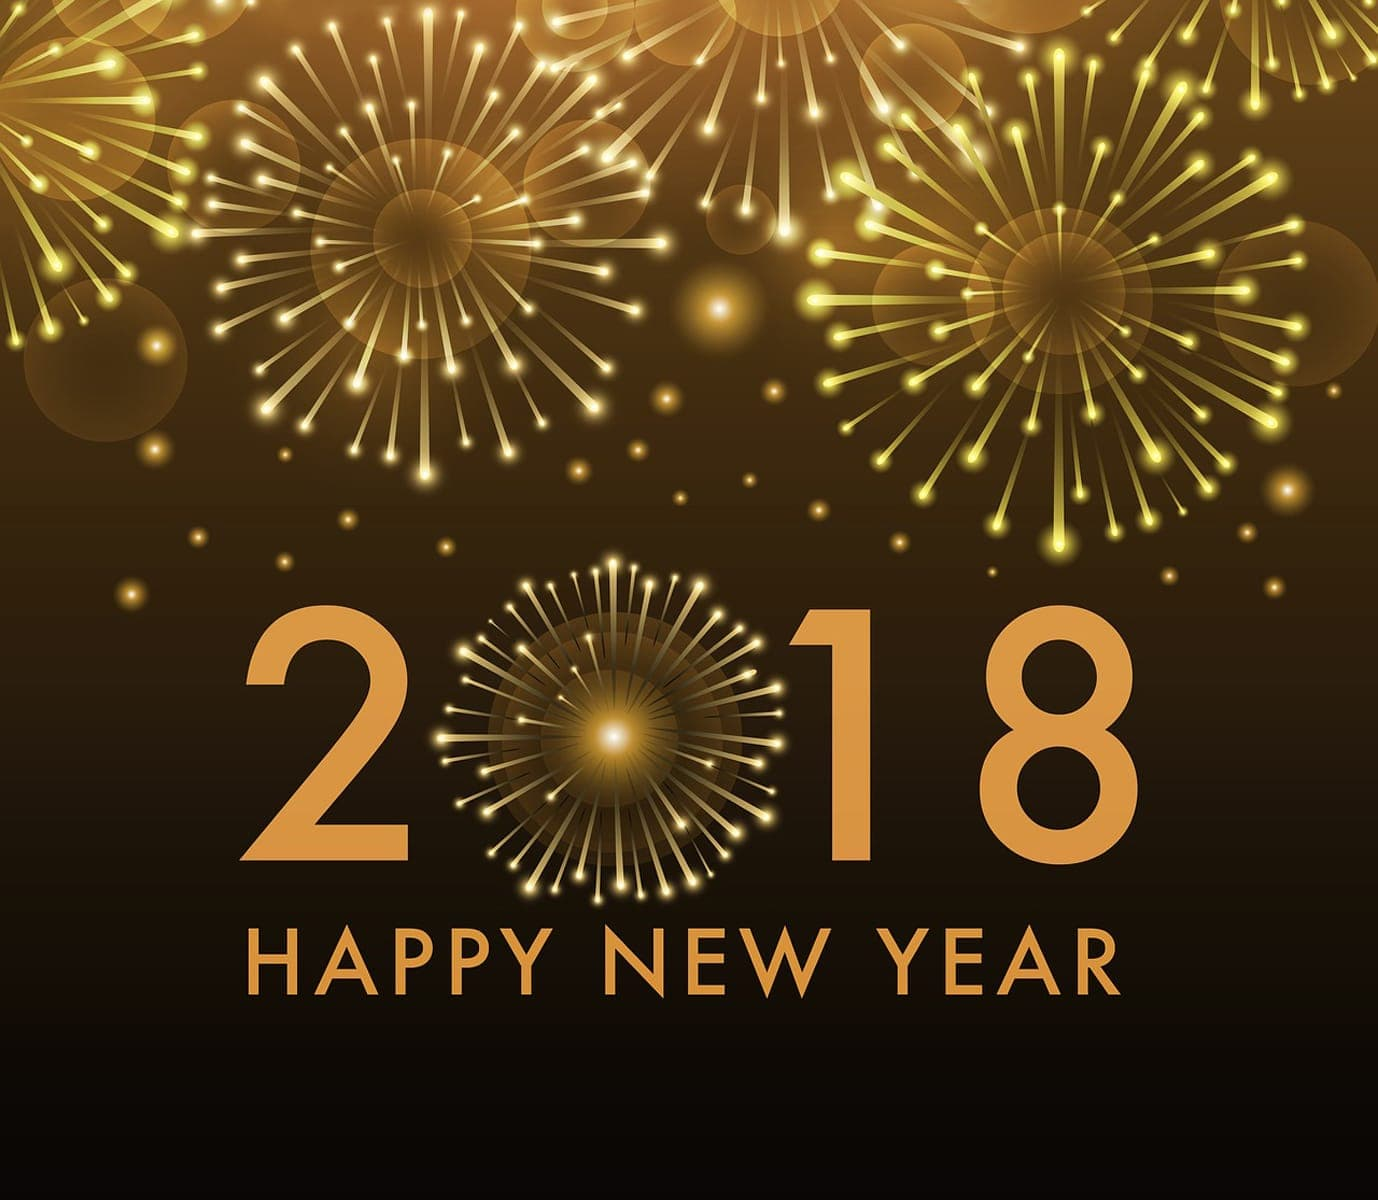 Cambridge, As Always, Is Set To Be A Happening Place This New Yearu0027s Eve.  The Hustle And Bustle That This Time Of Year Often Brings, Will Surely Give  You A ...